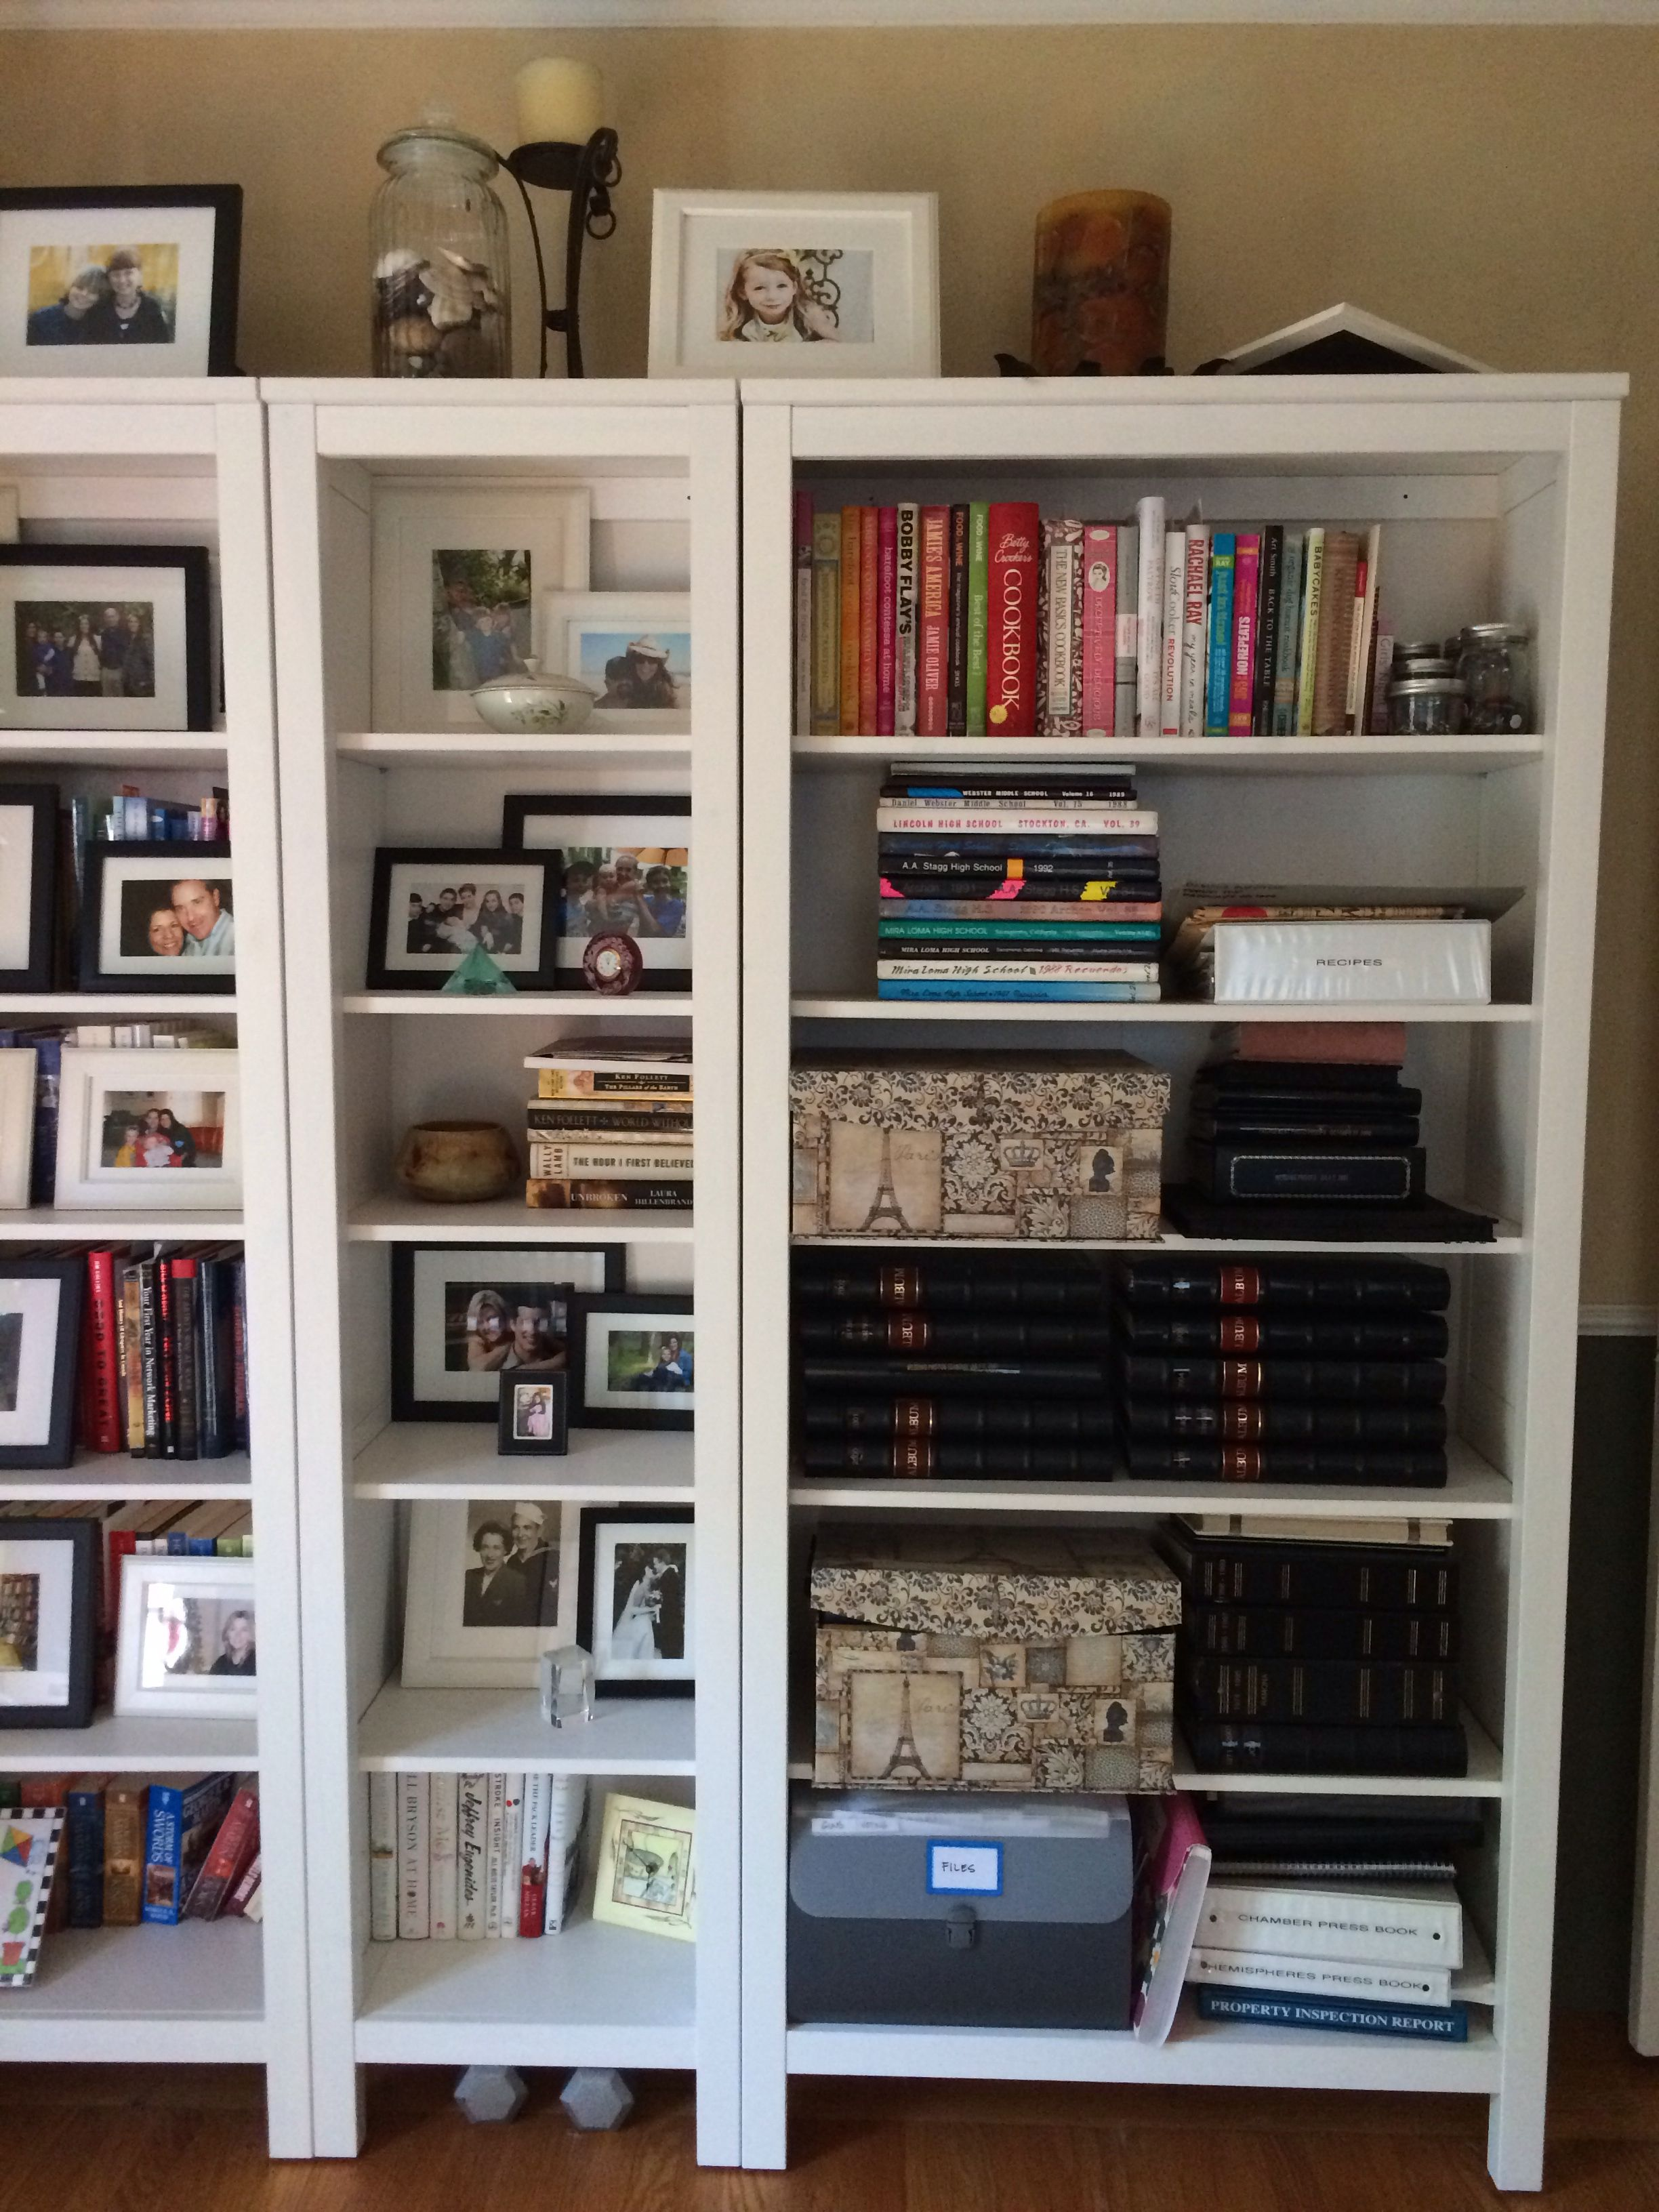 Ikea Home Office Library Ideas: I Wanted To Use My Bookshelves In My Office As A Place To